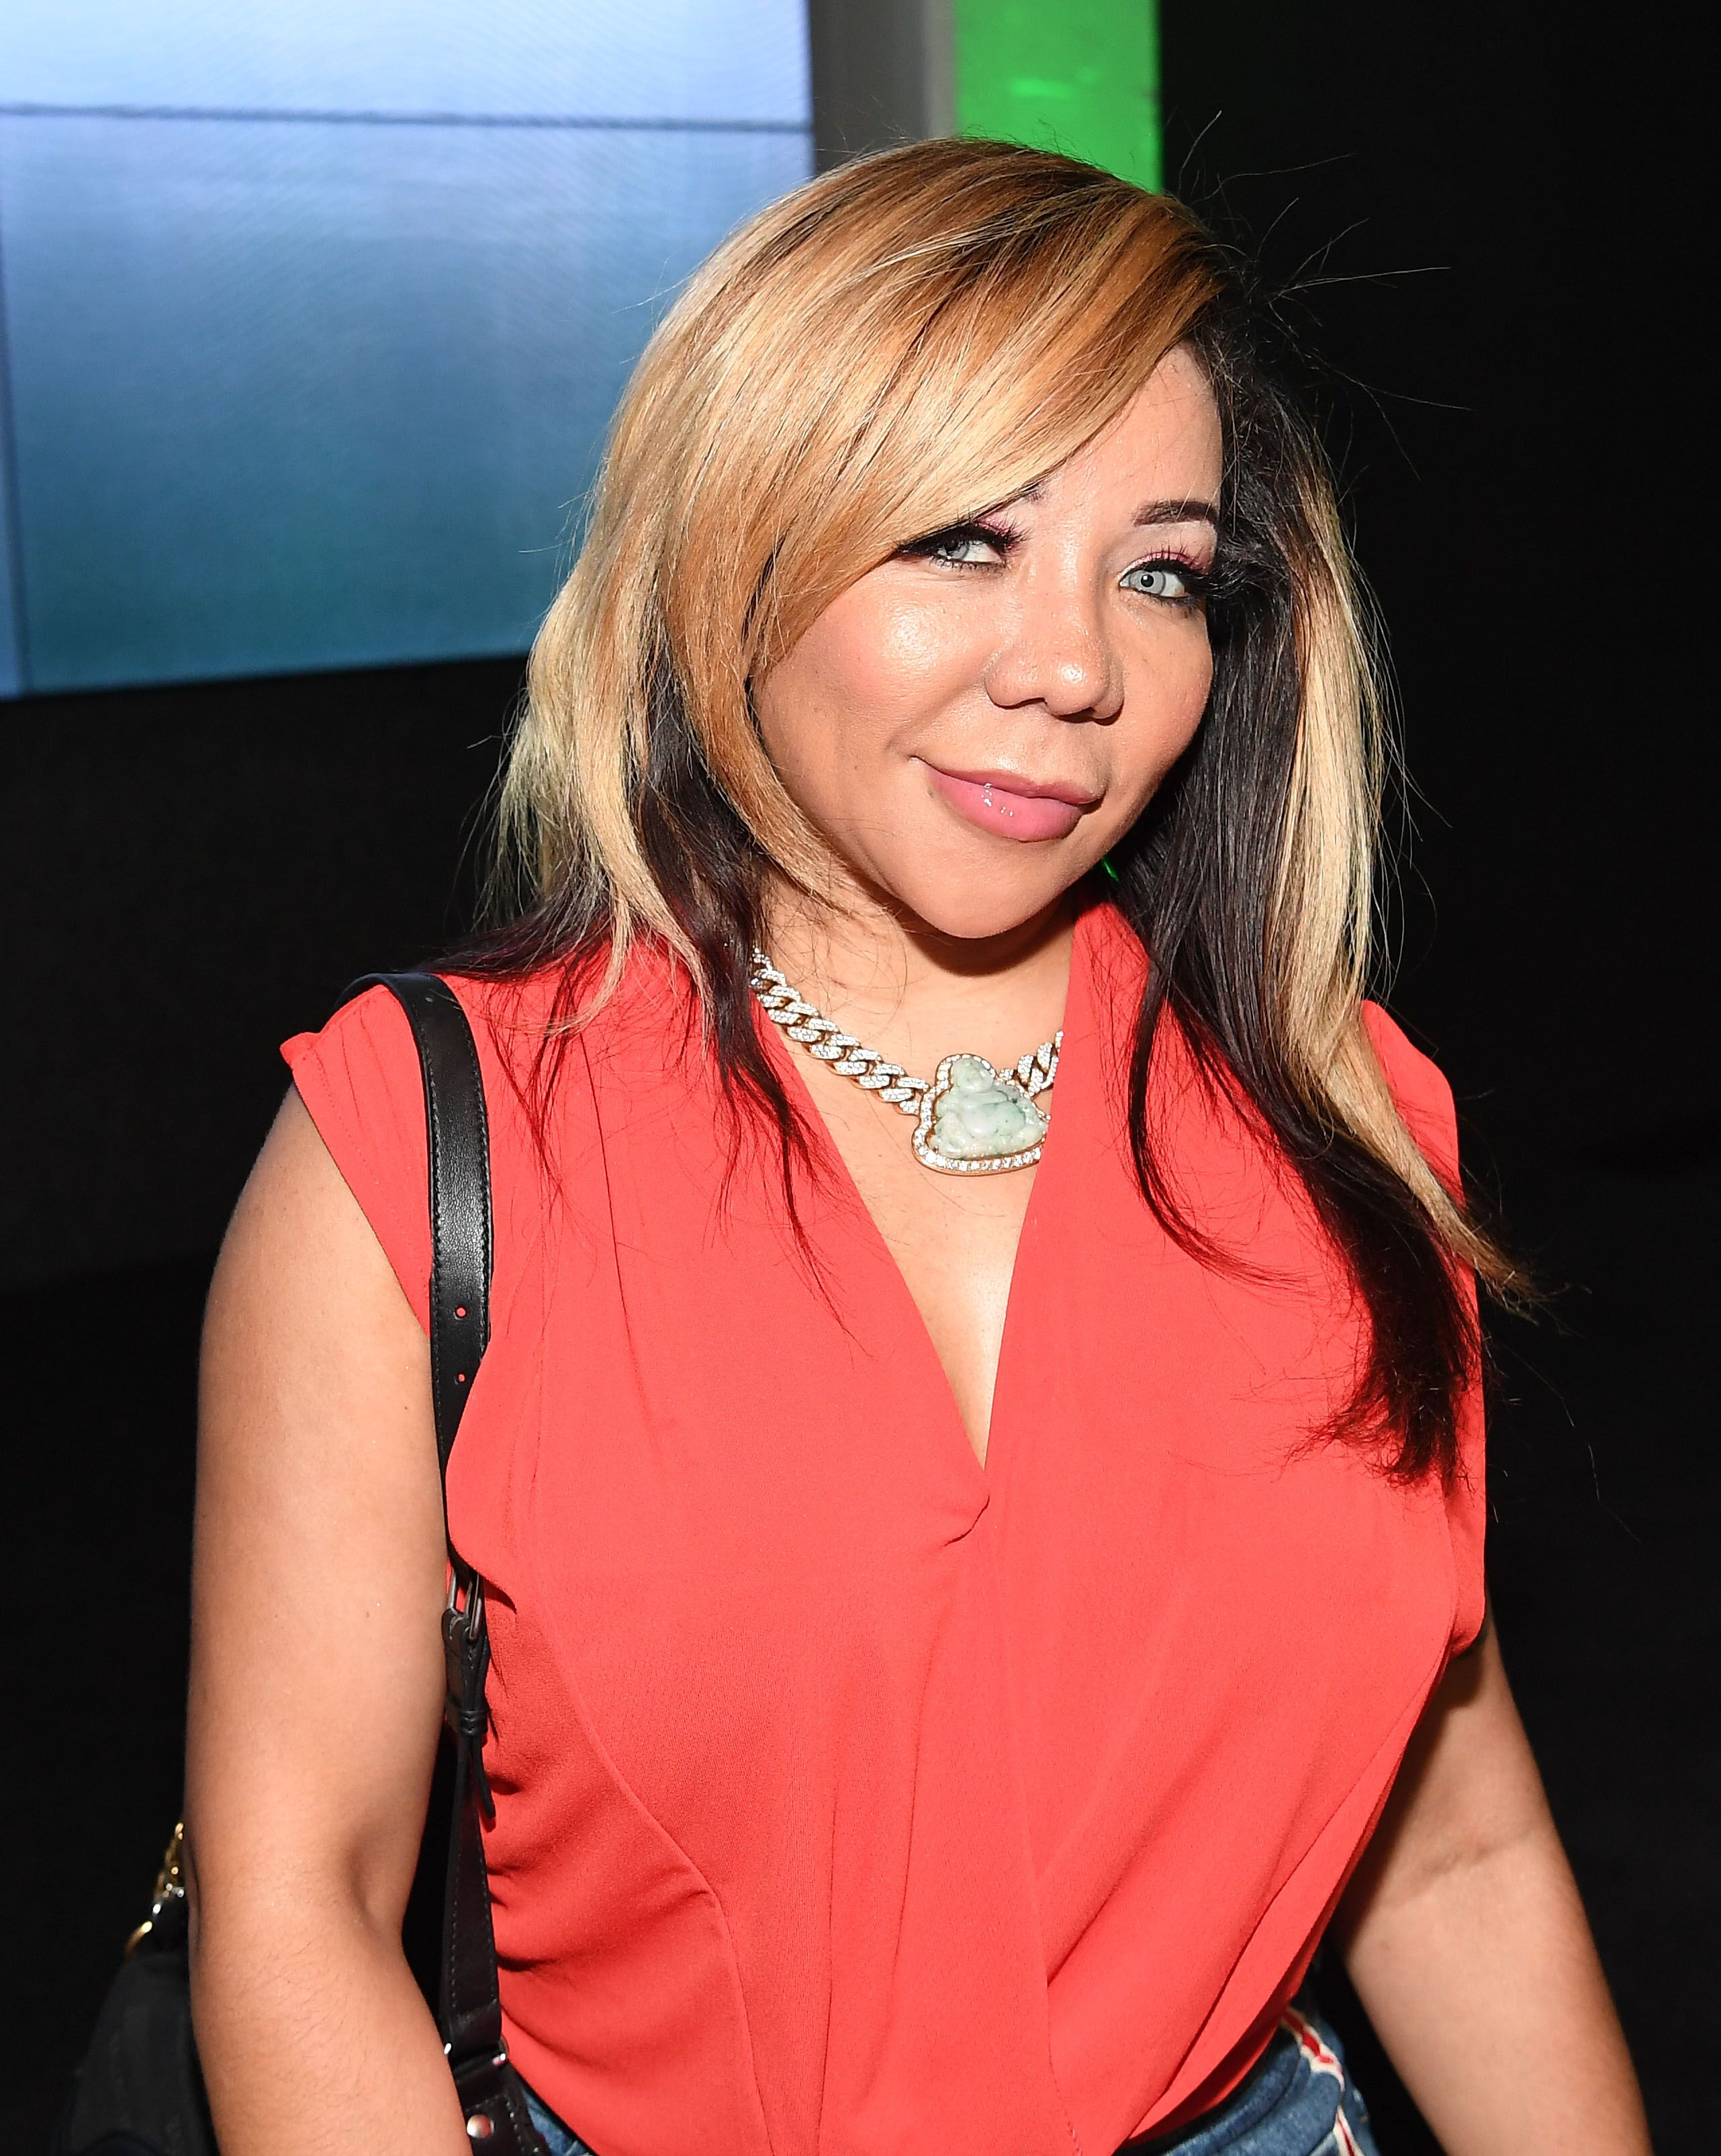 """Tameka """"Tiny"""" Harris attends """"The Grand Hustle"""" Exclusive Viewing Party at The Gathering Spot on July 19, 2018 in Atlanta, Georgia   Photo: Getty Images"""